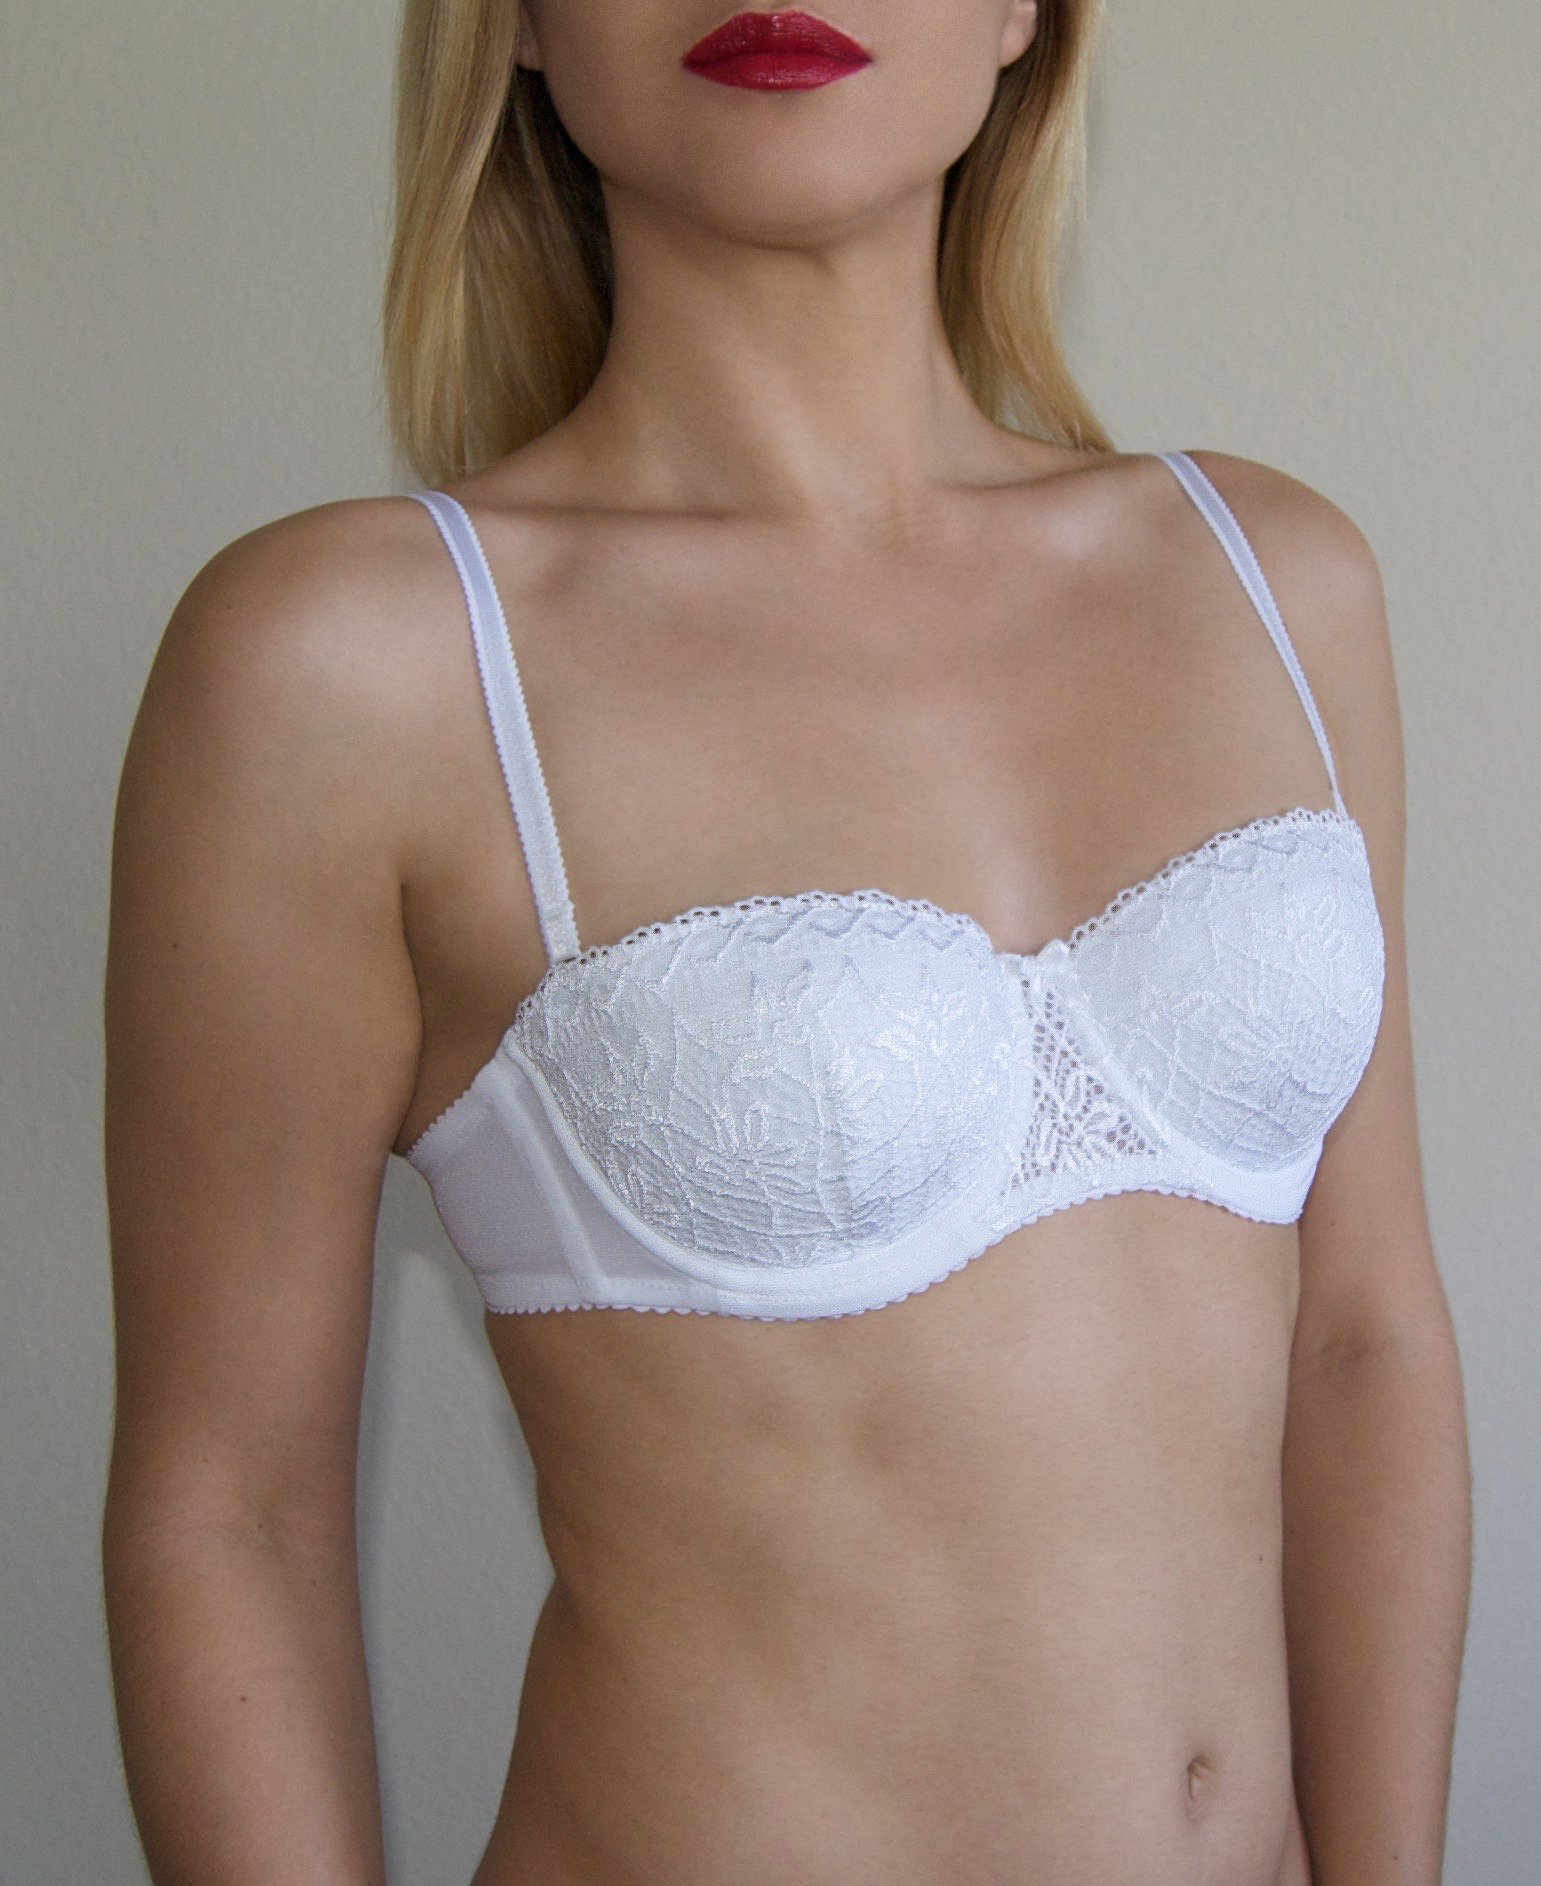 Compare to full-cup and demi-cup bra. Balcony: Similar to a balconette or demi-cup bra, but the sides are higher and the front is lower exposing more cleavage. Bandeau: A simple band of material, usually stretchy, that is worn across the breasts.